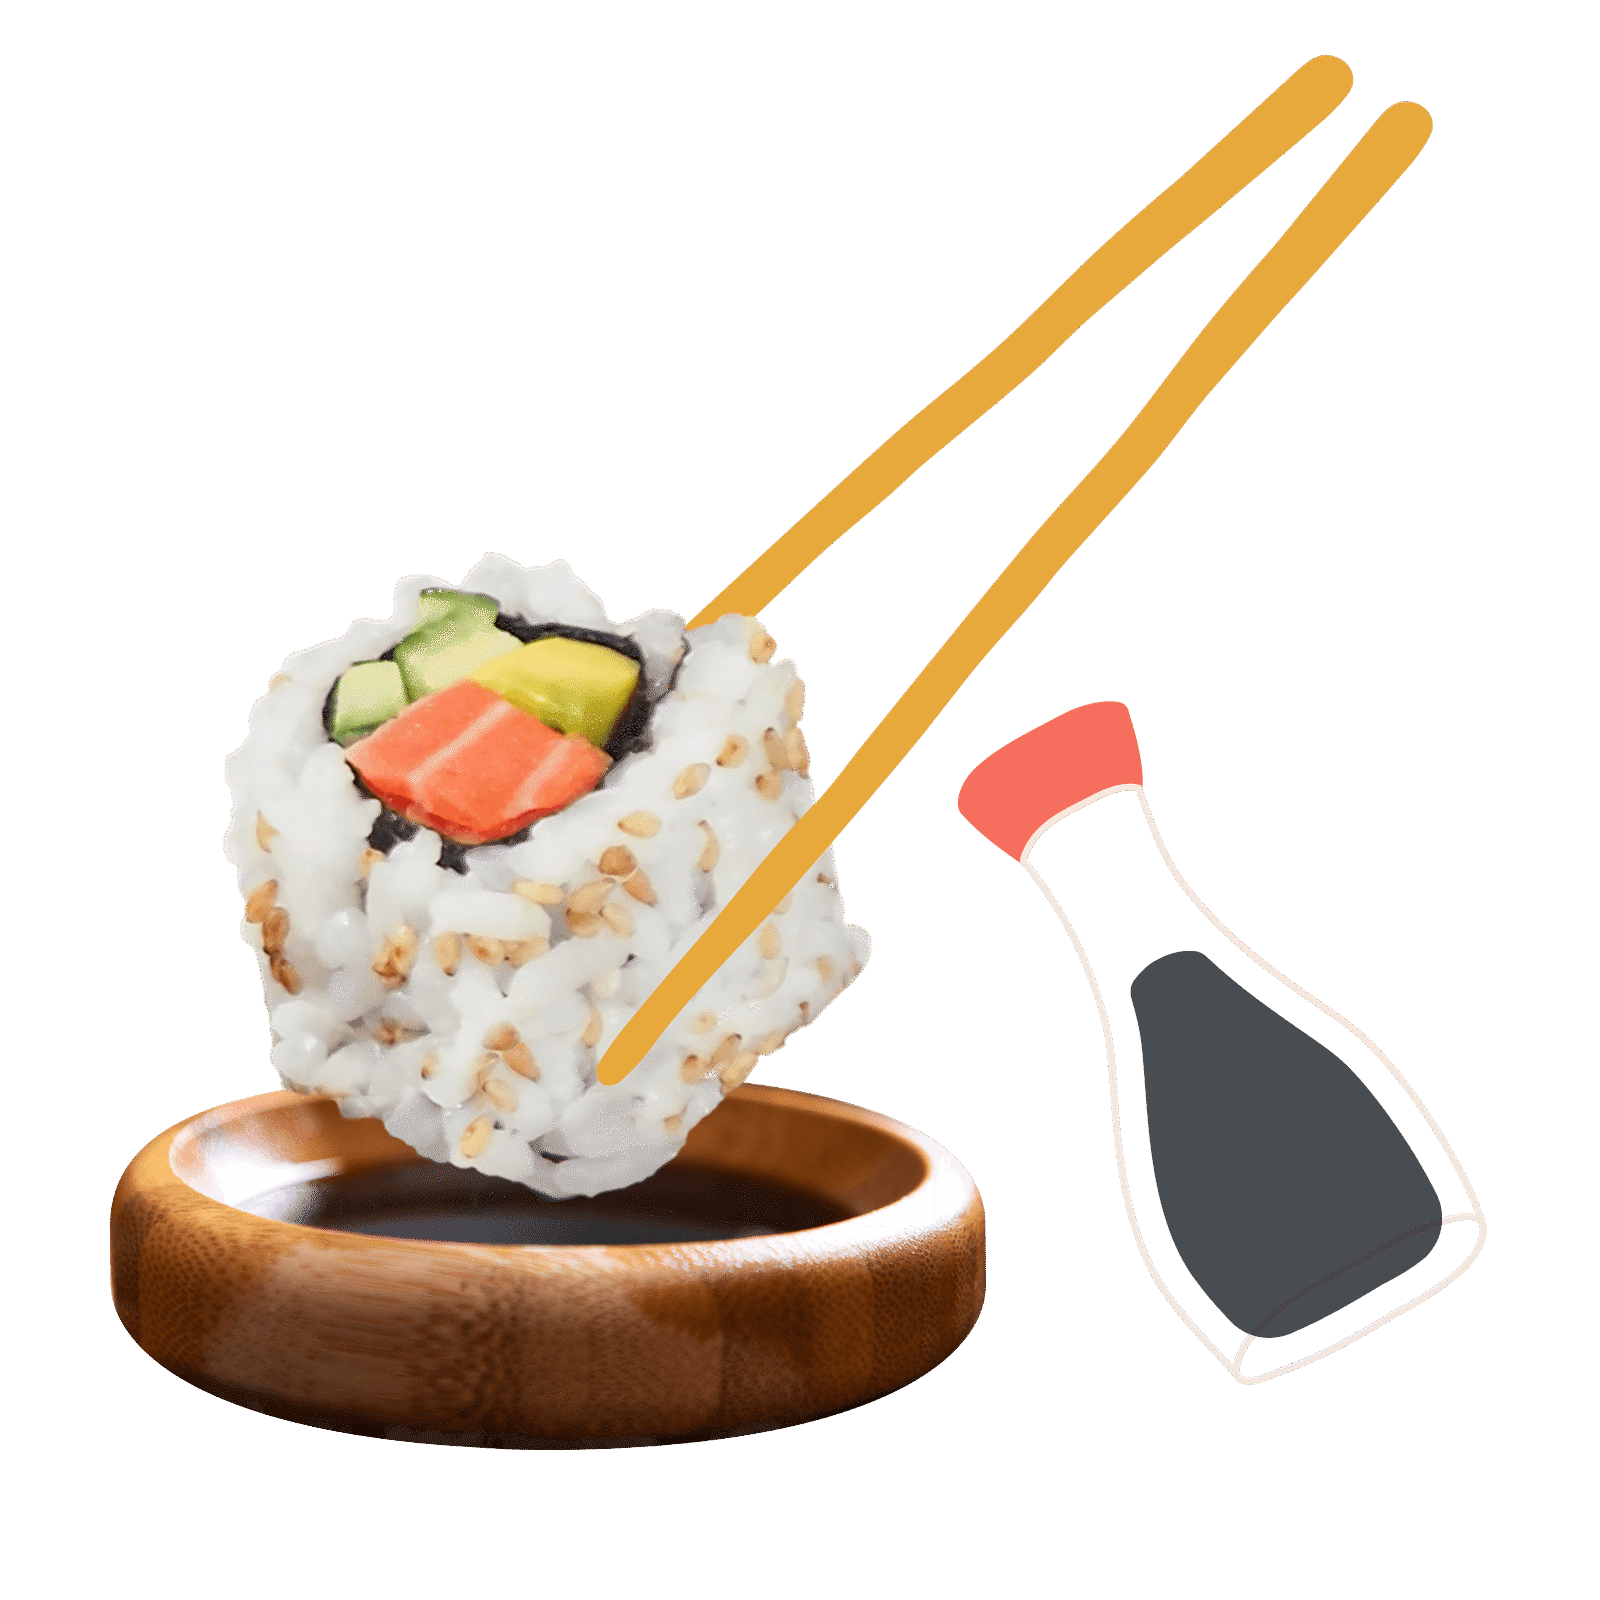 Sushi with chopstick and soy sauce illustration